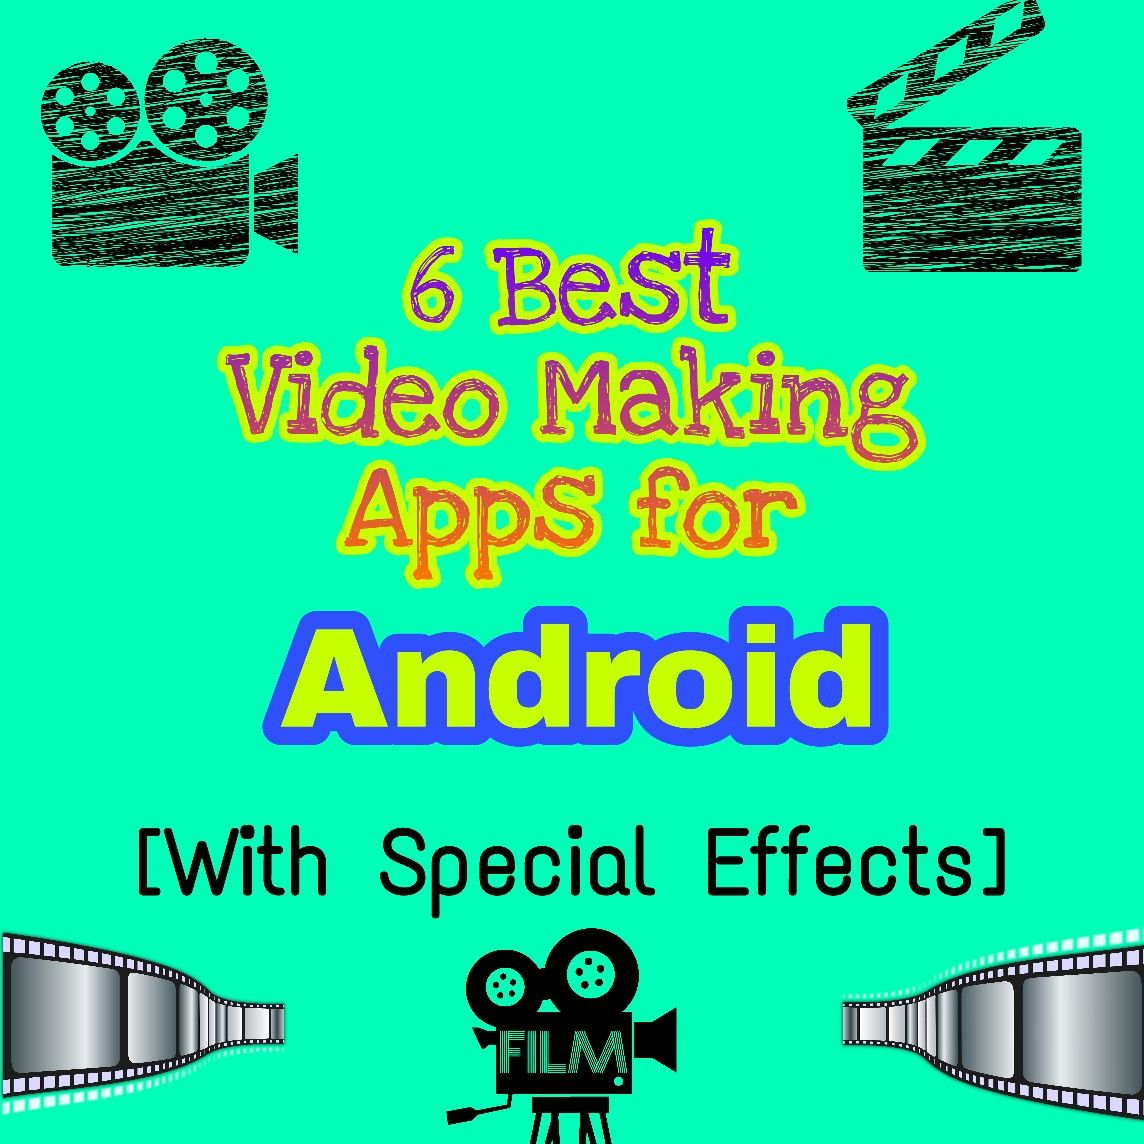 Here it is... Best Video Making / Editing Apps in 2018